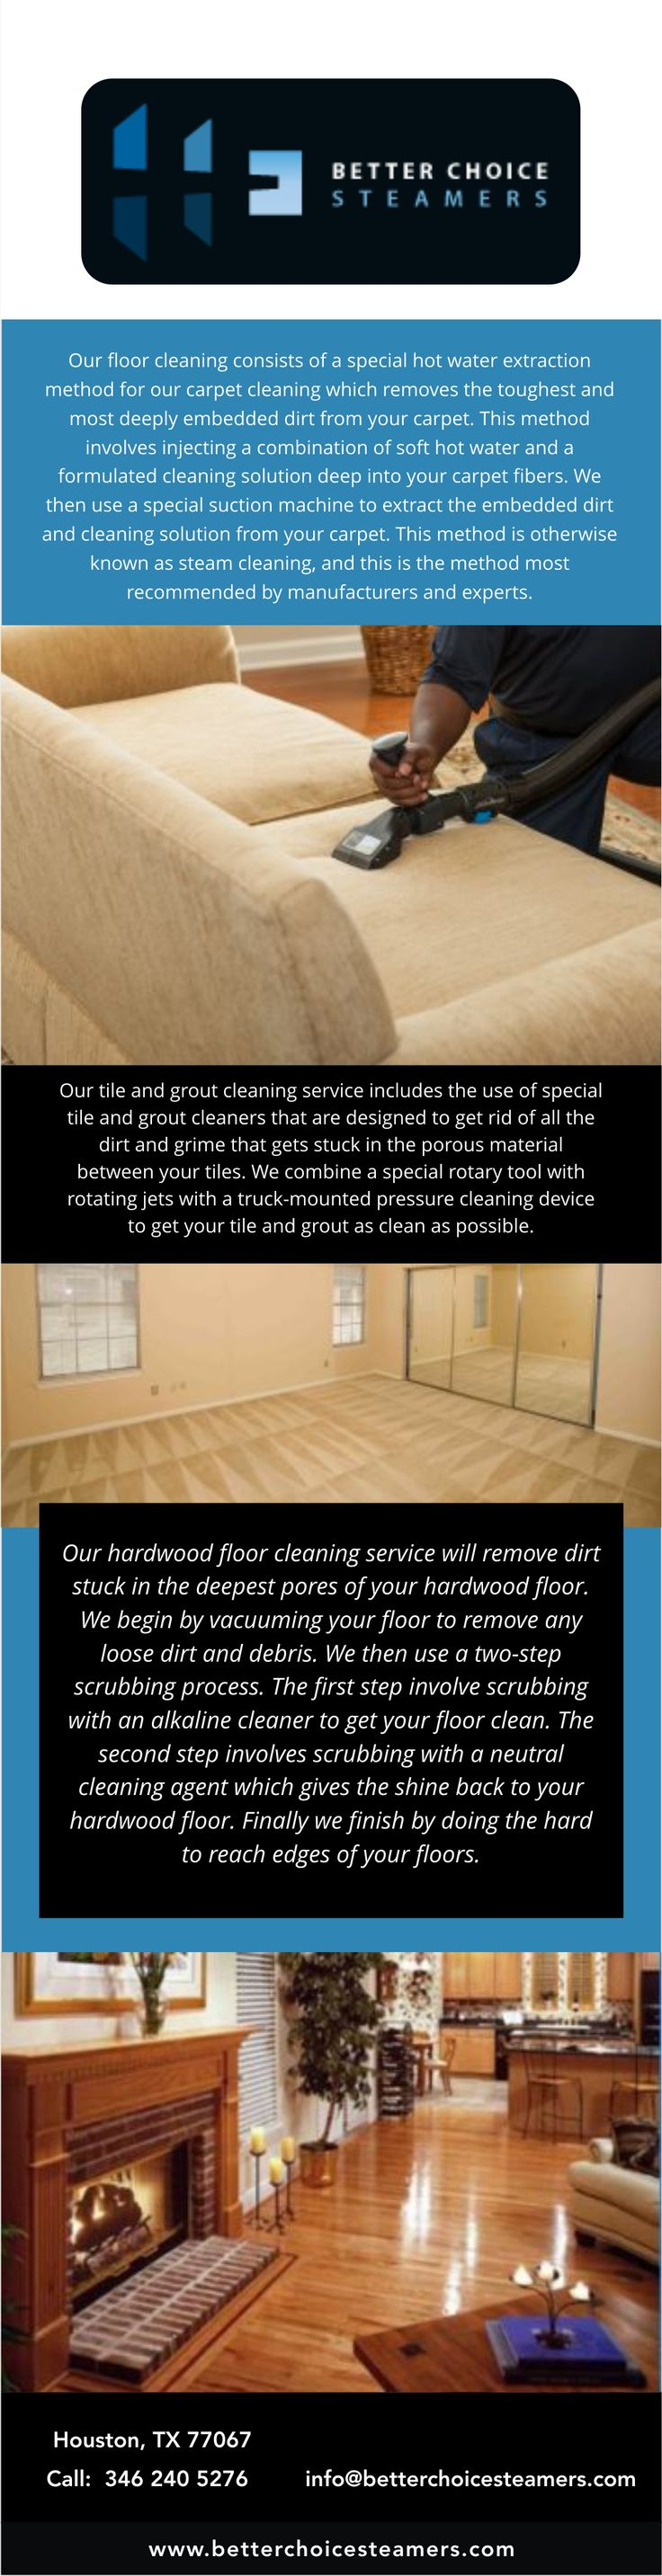 With more than fifteen years of experience in state-of-the-art carpet care, Better Choice Steamers is well known to provide you with the best carpet cleaning service available locally in Houston. As Better Choice Steamers, we know that our repetitive business and customer care is a main priority. It is our goal provide te Houston area with the very best carpet cleaning, furniture cleaning, tile cleaning, and floor cleaning services available.